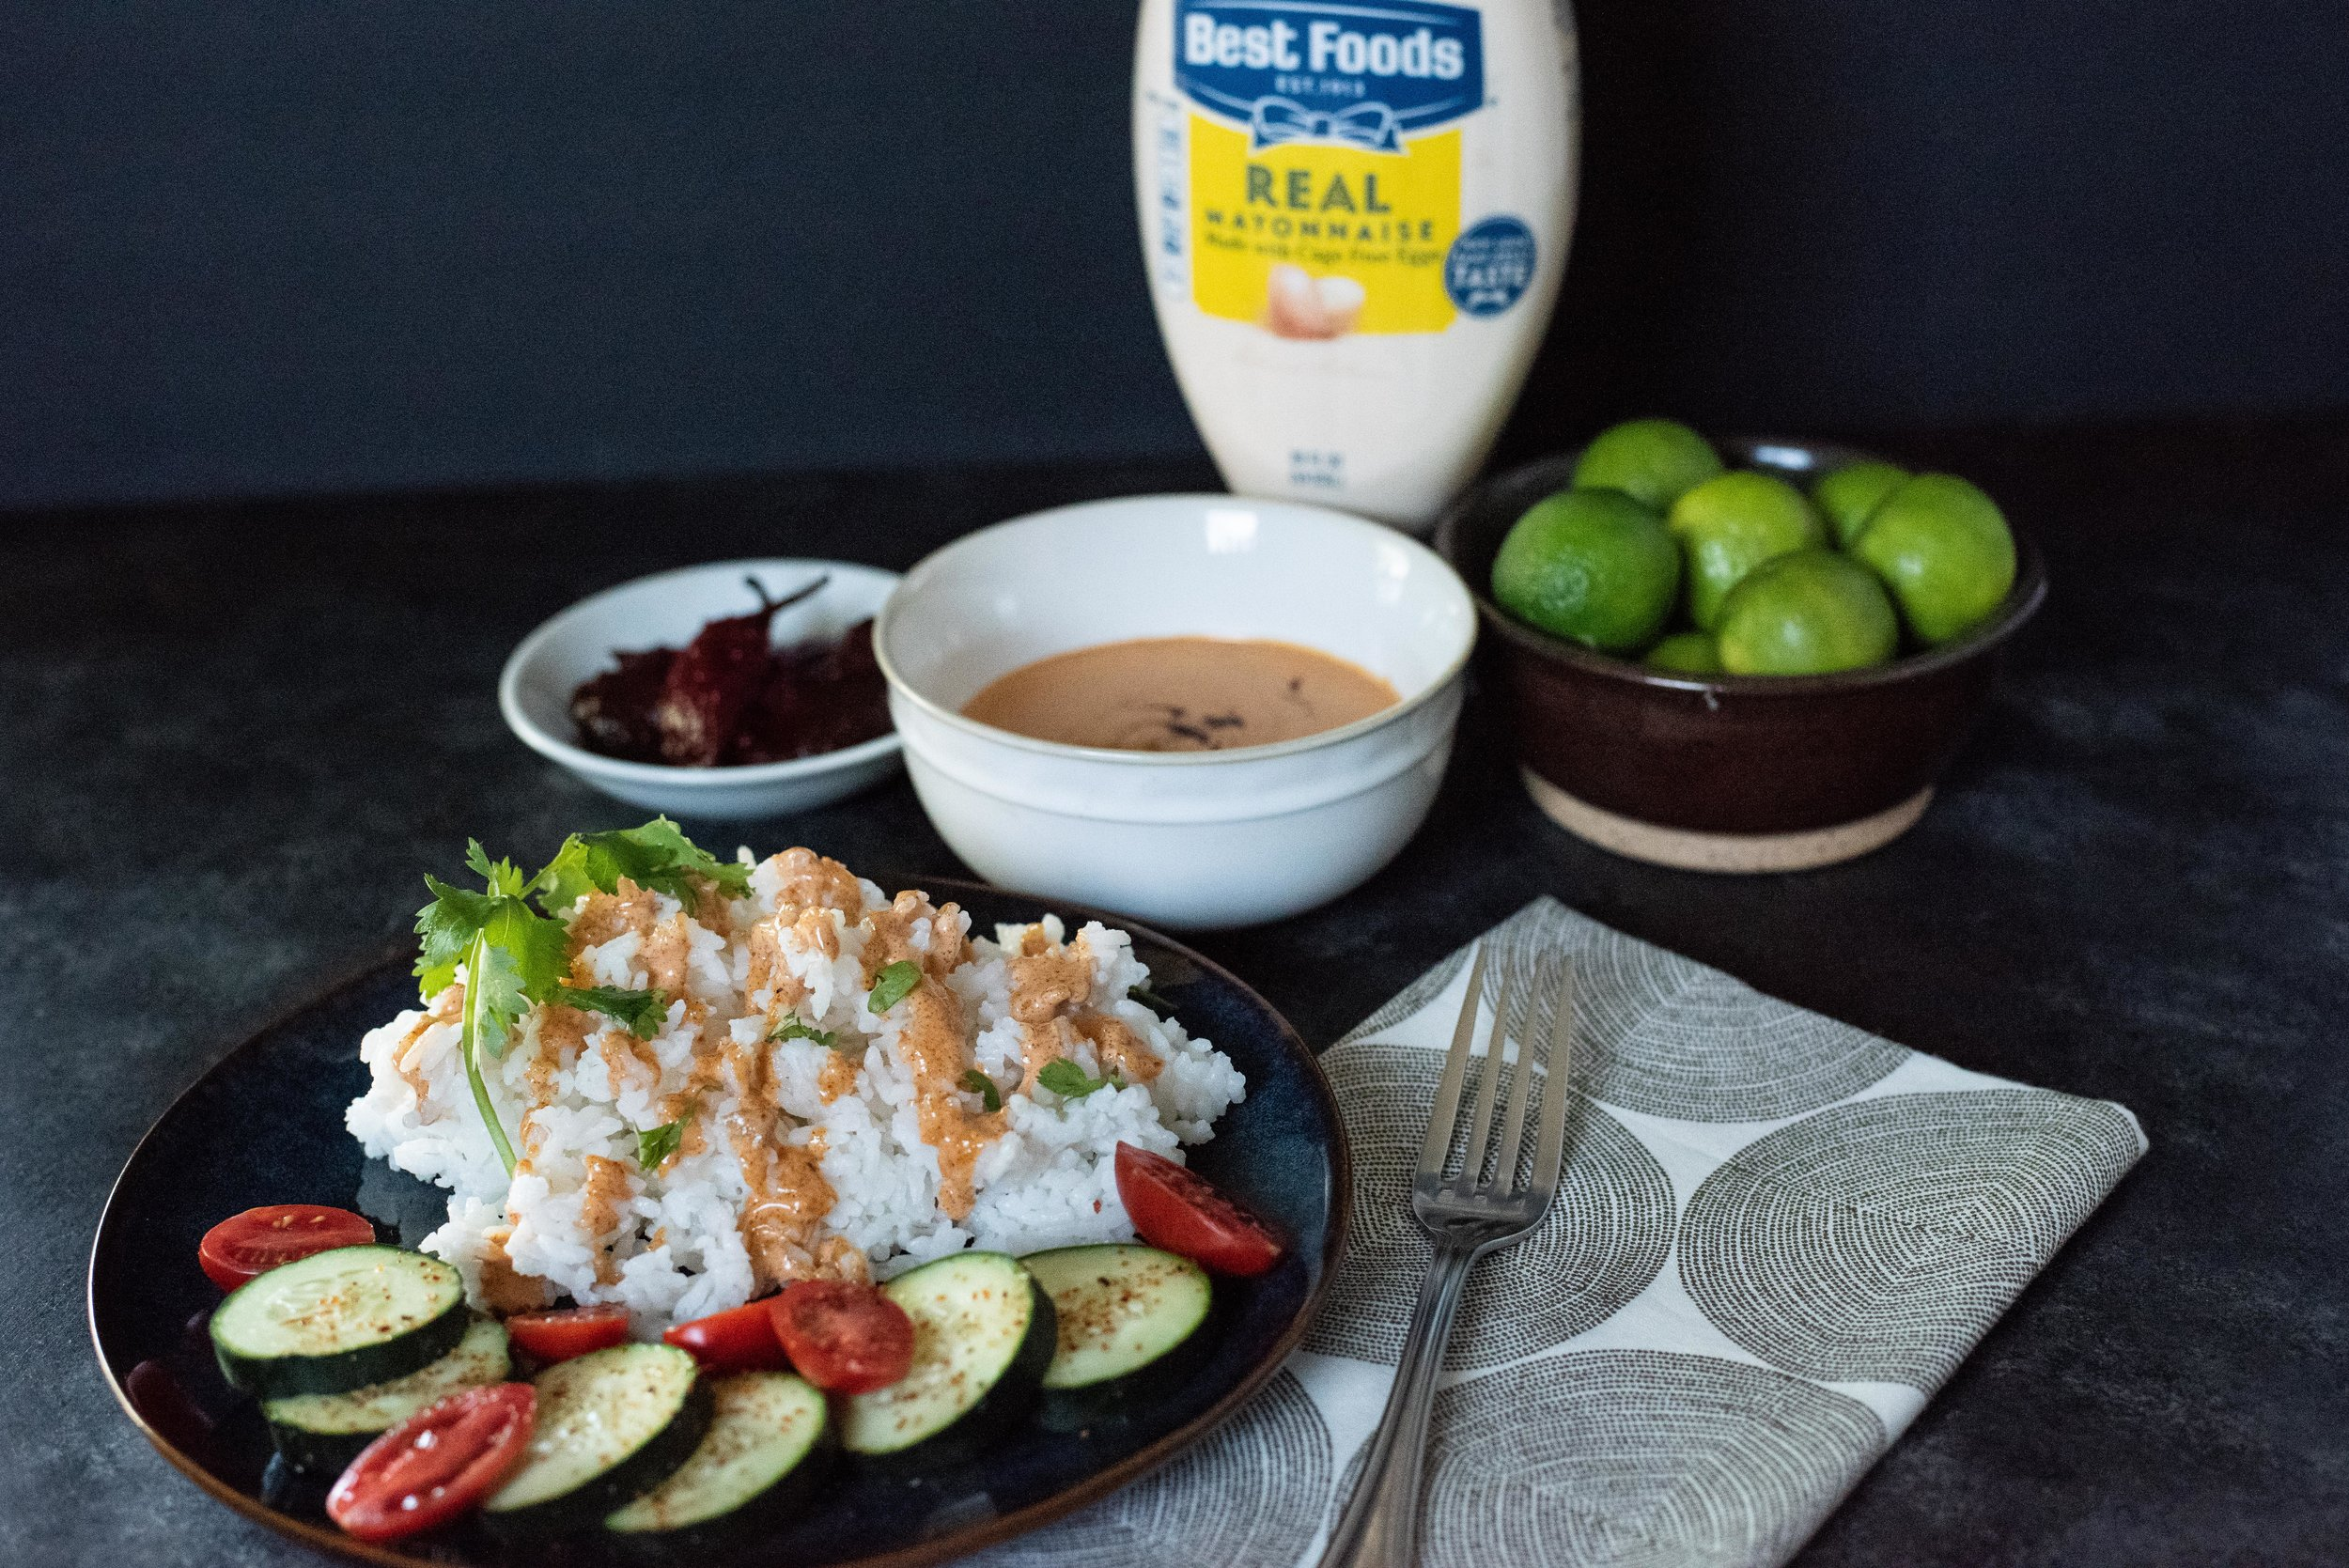 Drizzle this chipotle chili mayo on rice, vegetables or any grilled meats or fish.